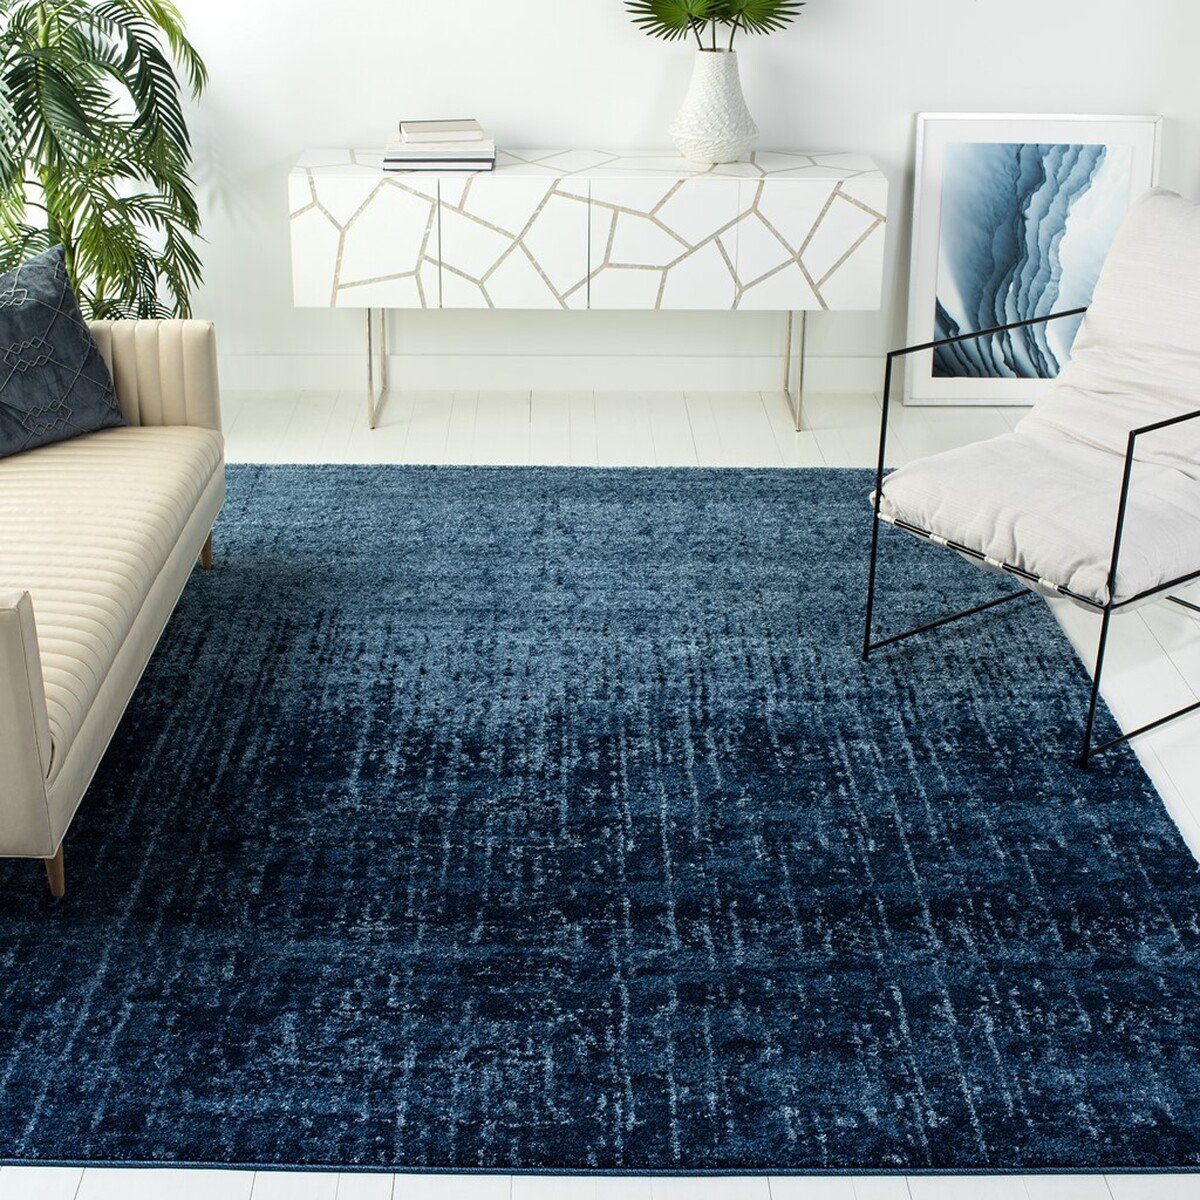 Blue Outdoor Rug 9x12: Retro Rugs Collection - Safavieh.com